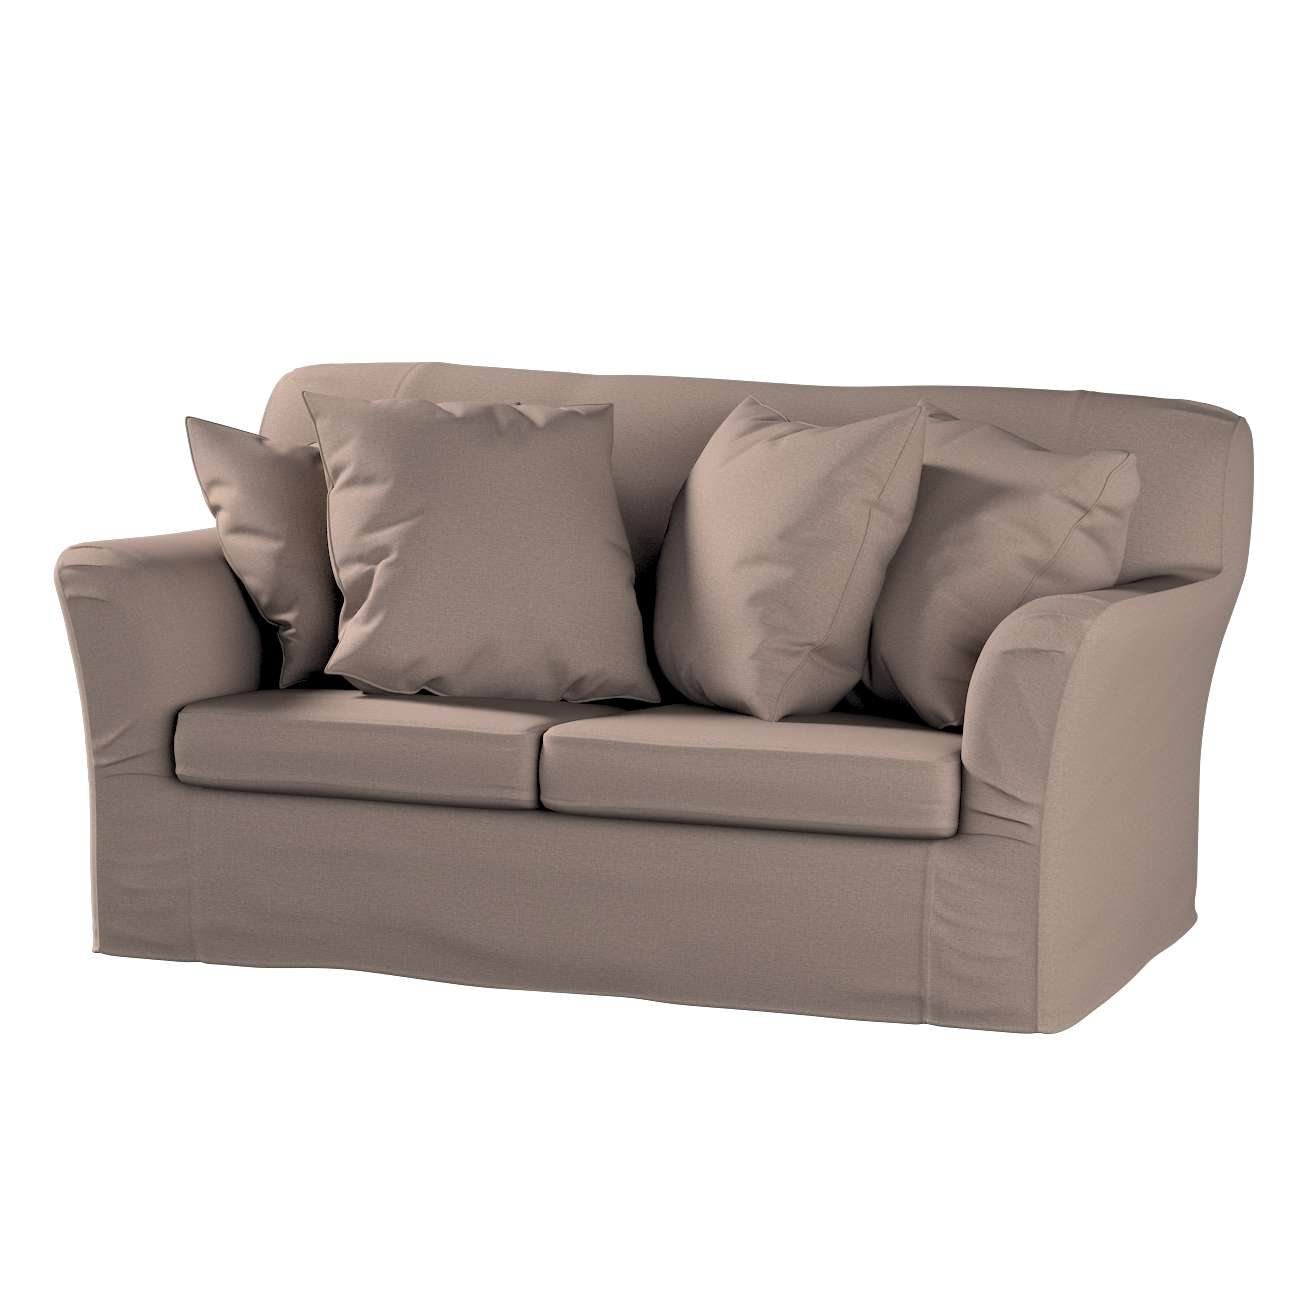 Tomelilla 2-seater sofa cover Tomelilla 2-seat sofa in collection Aspen, fabric: 160-16